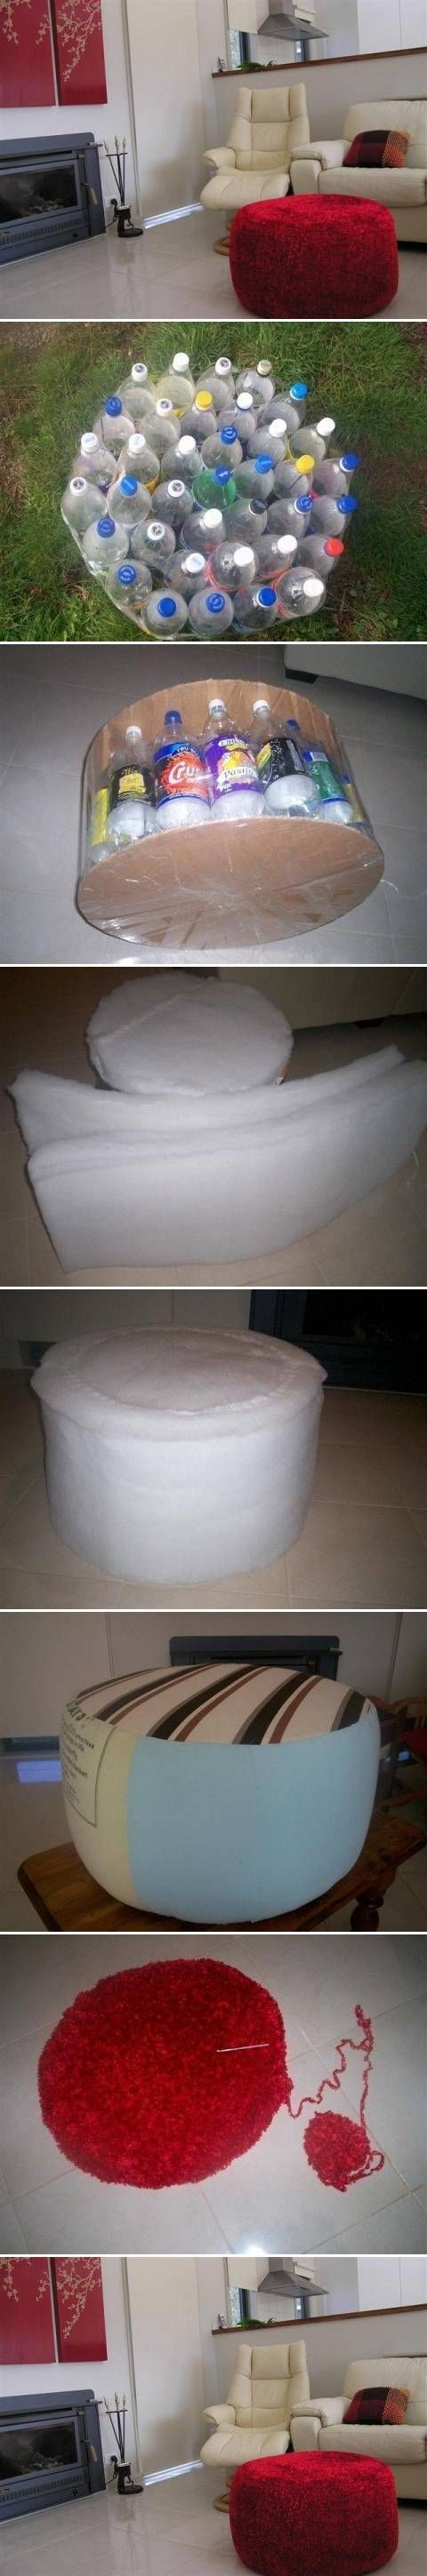 DIY Simple Ottoman from Plastic Bottles | iCreativeIdeas.com Like Us on Facebook ==> https://www.facebook.com/icreativeideas: